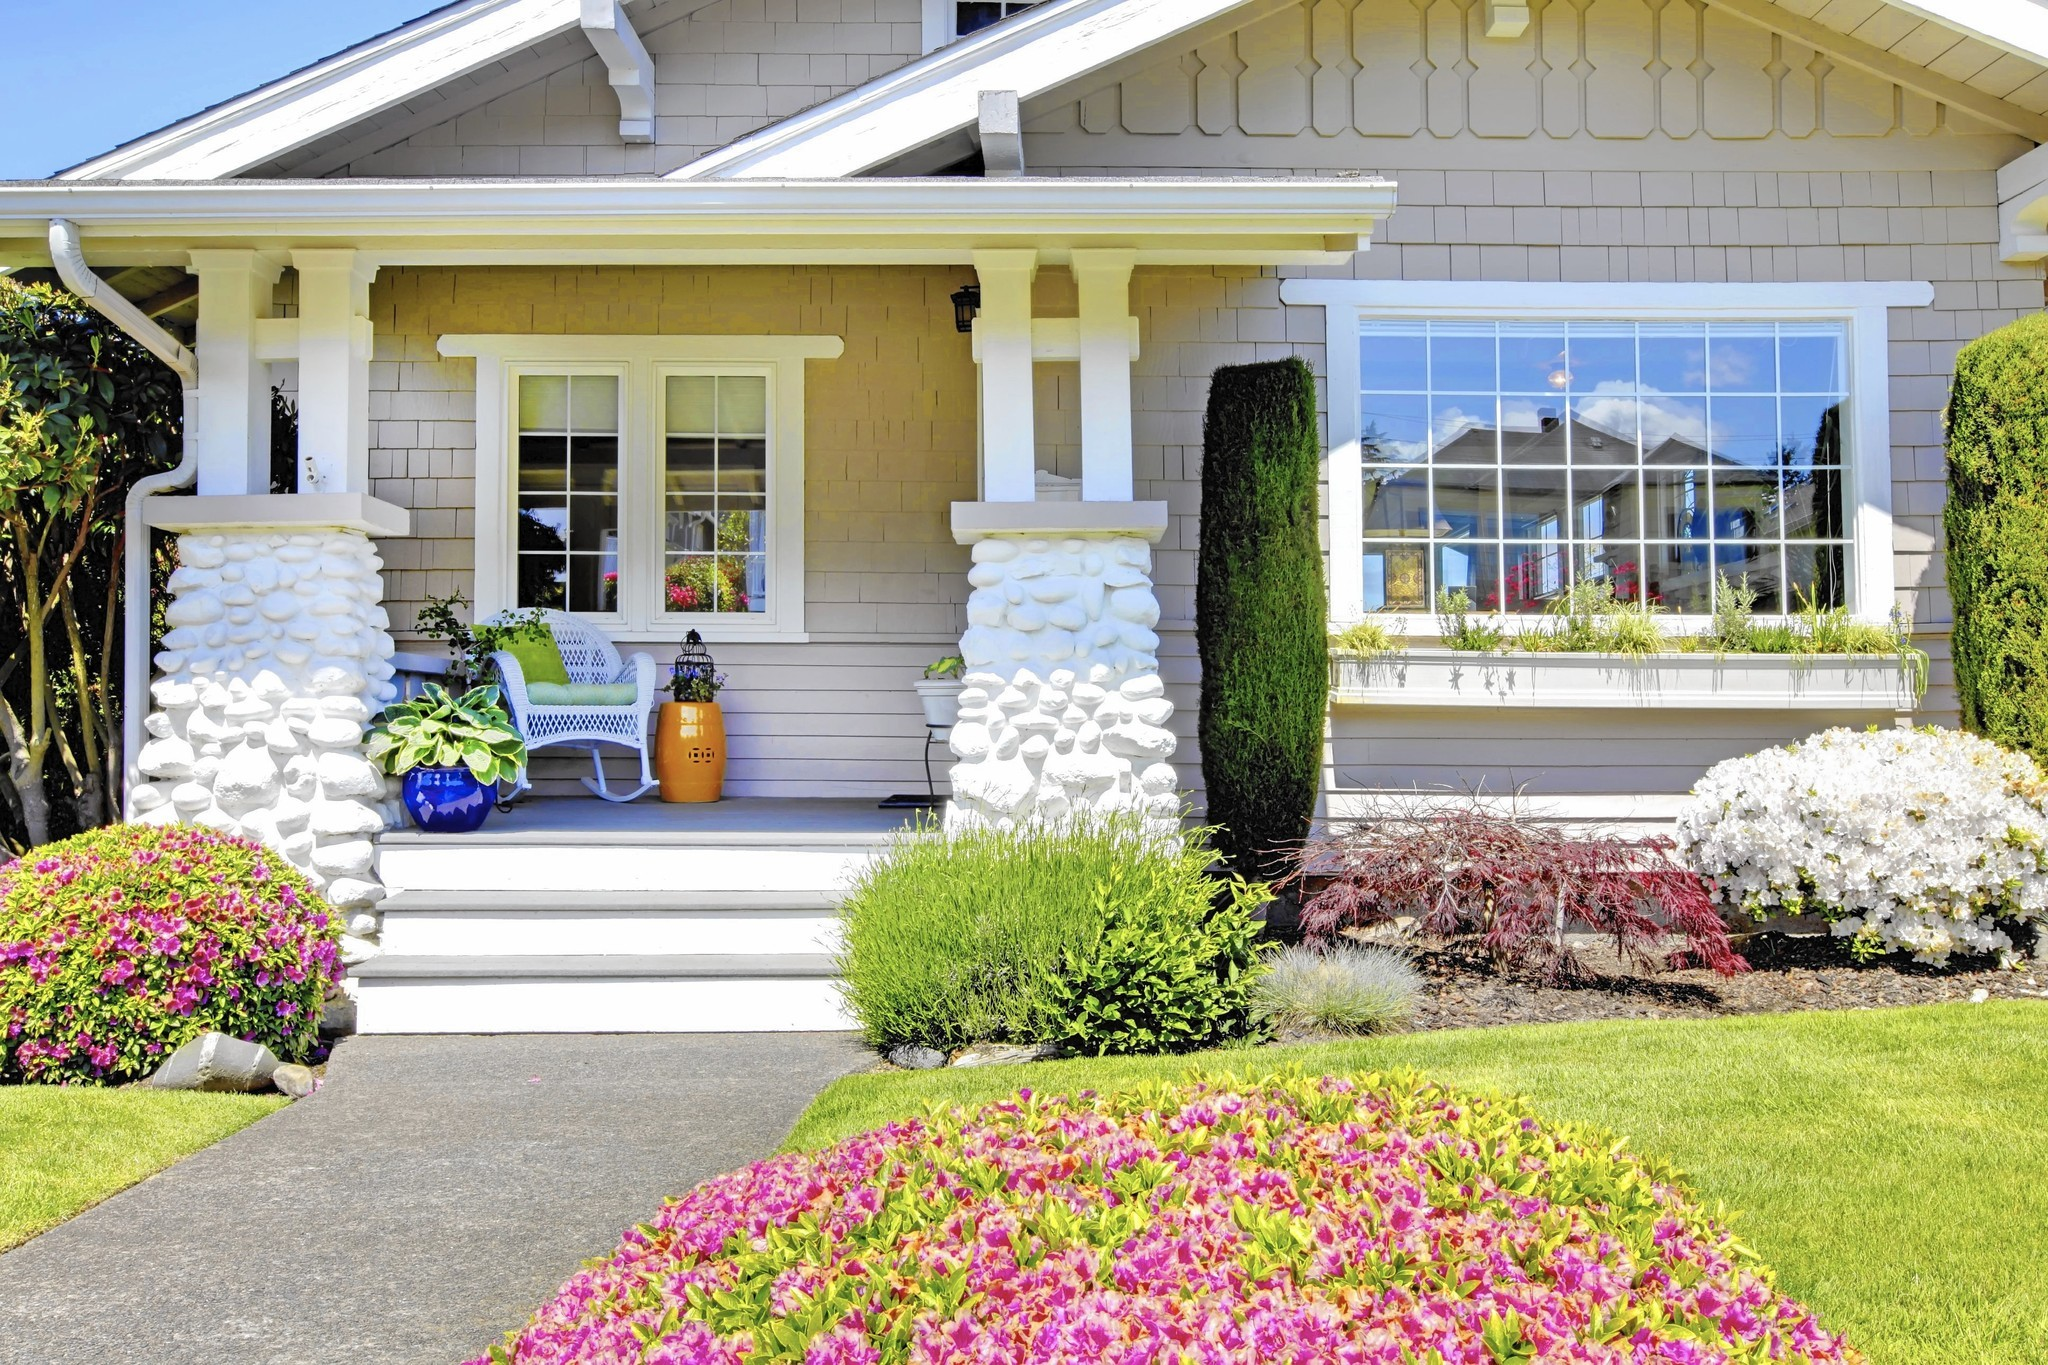 Curb appeal reconsider landscaping in front yard chicago tribune